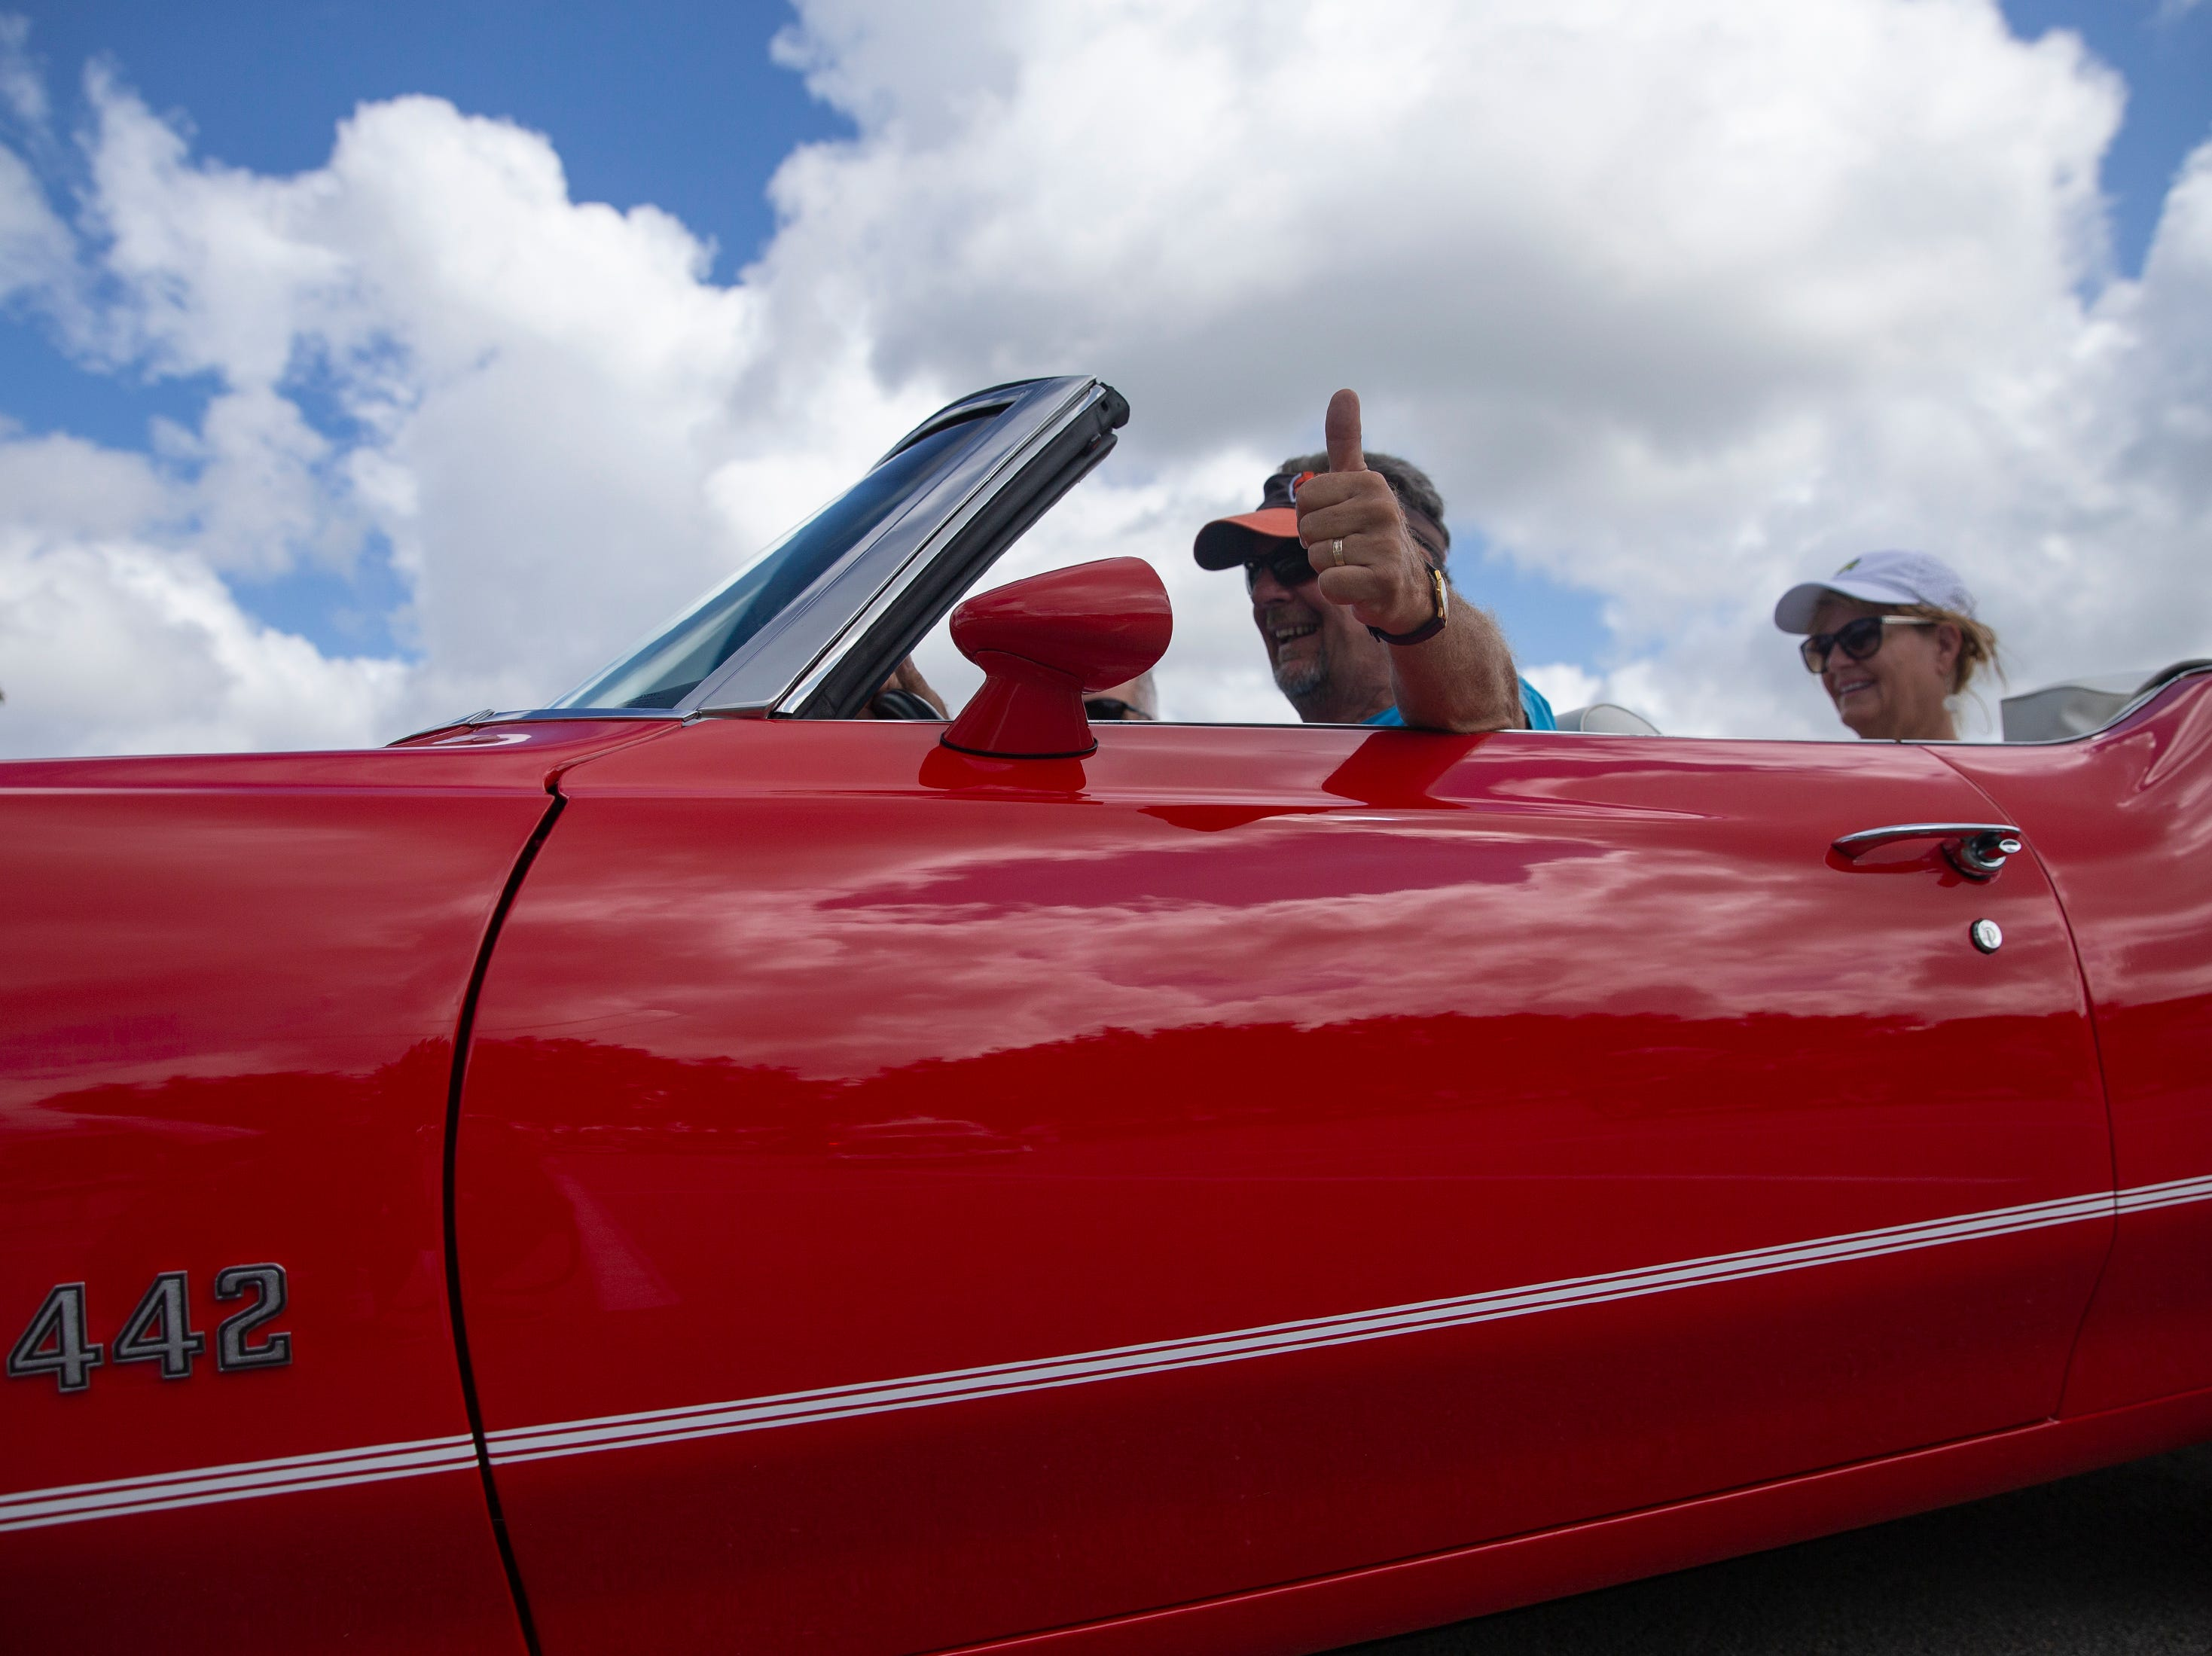 Cape Coral residents Paul Perzyk drives Terri Smith's, pictured in the back seat, 1971 Oldsmobile 442 during the Cruis'n for a Cause event on Saturday, April 13, 2019 at the Miromar Outlets in Estero.